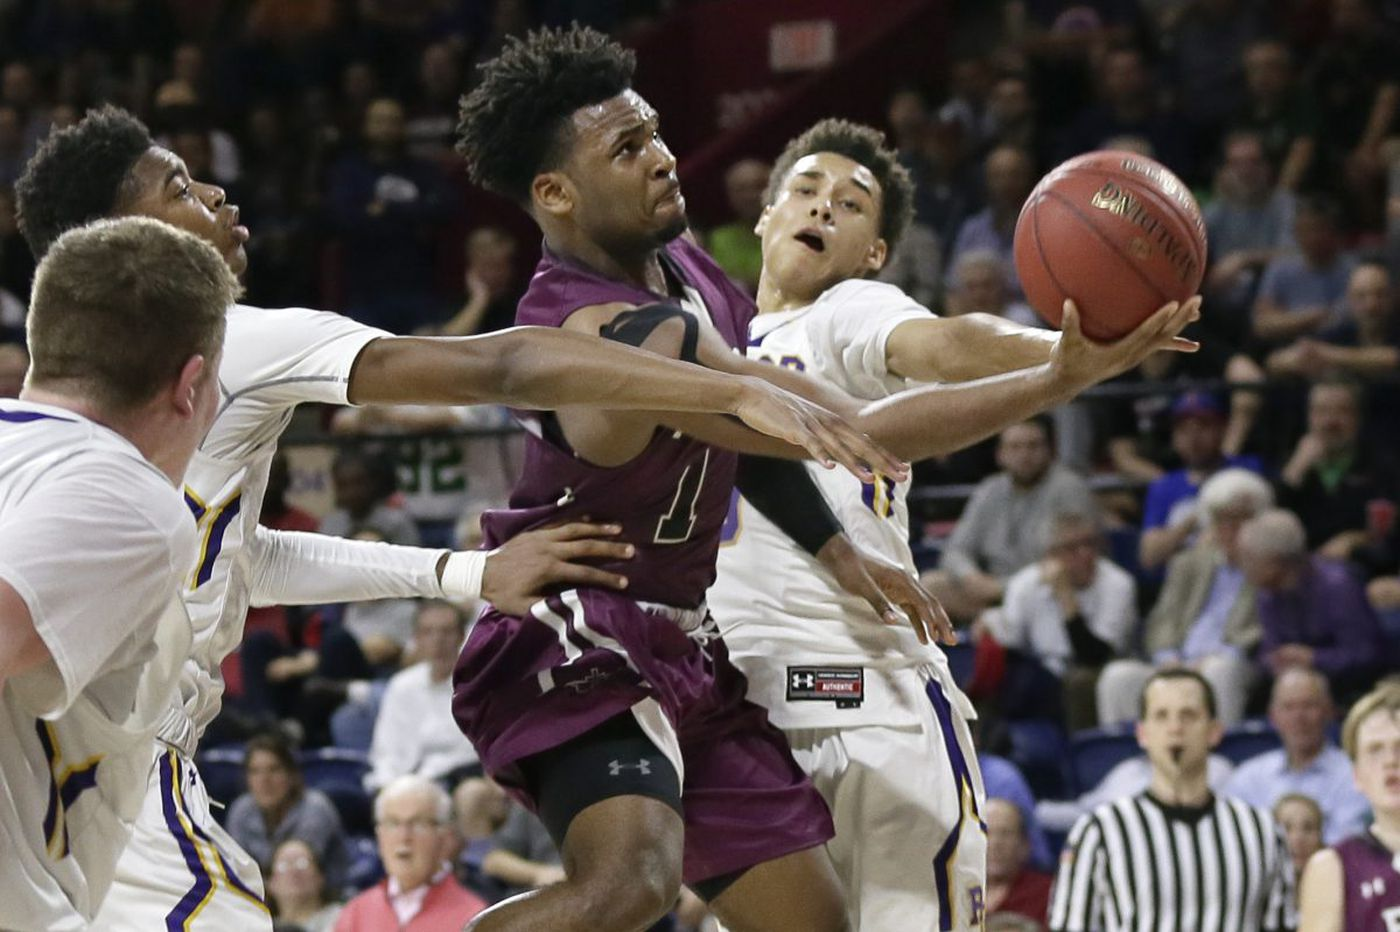 Thursday's Pa. roundup: St. Joseph's Prep beats Frankford to earn spot in states